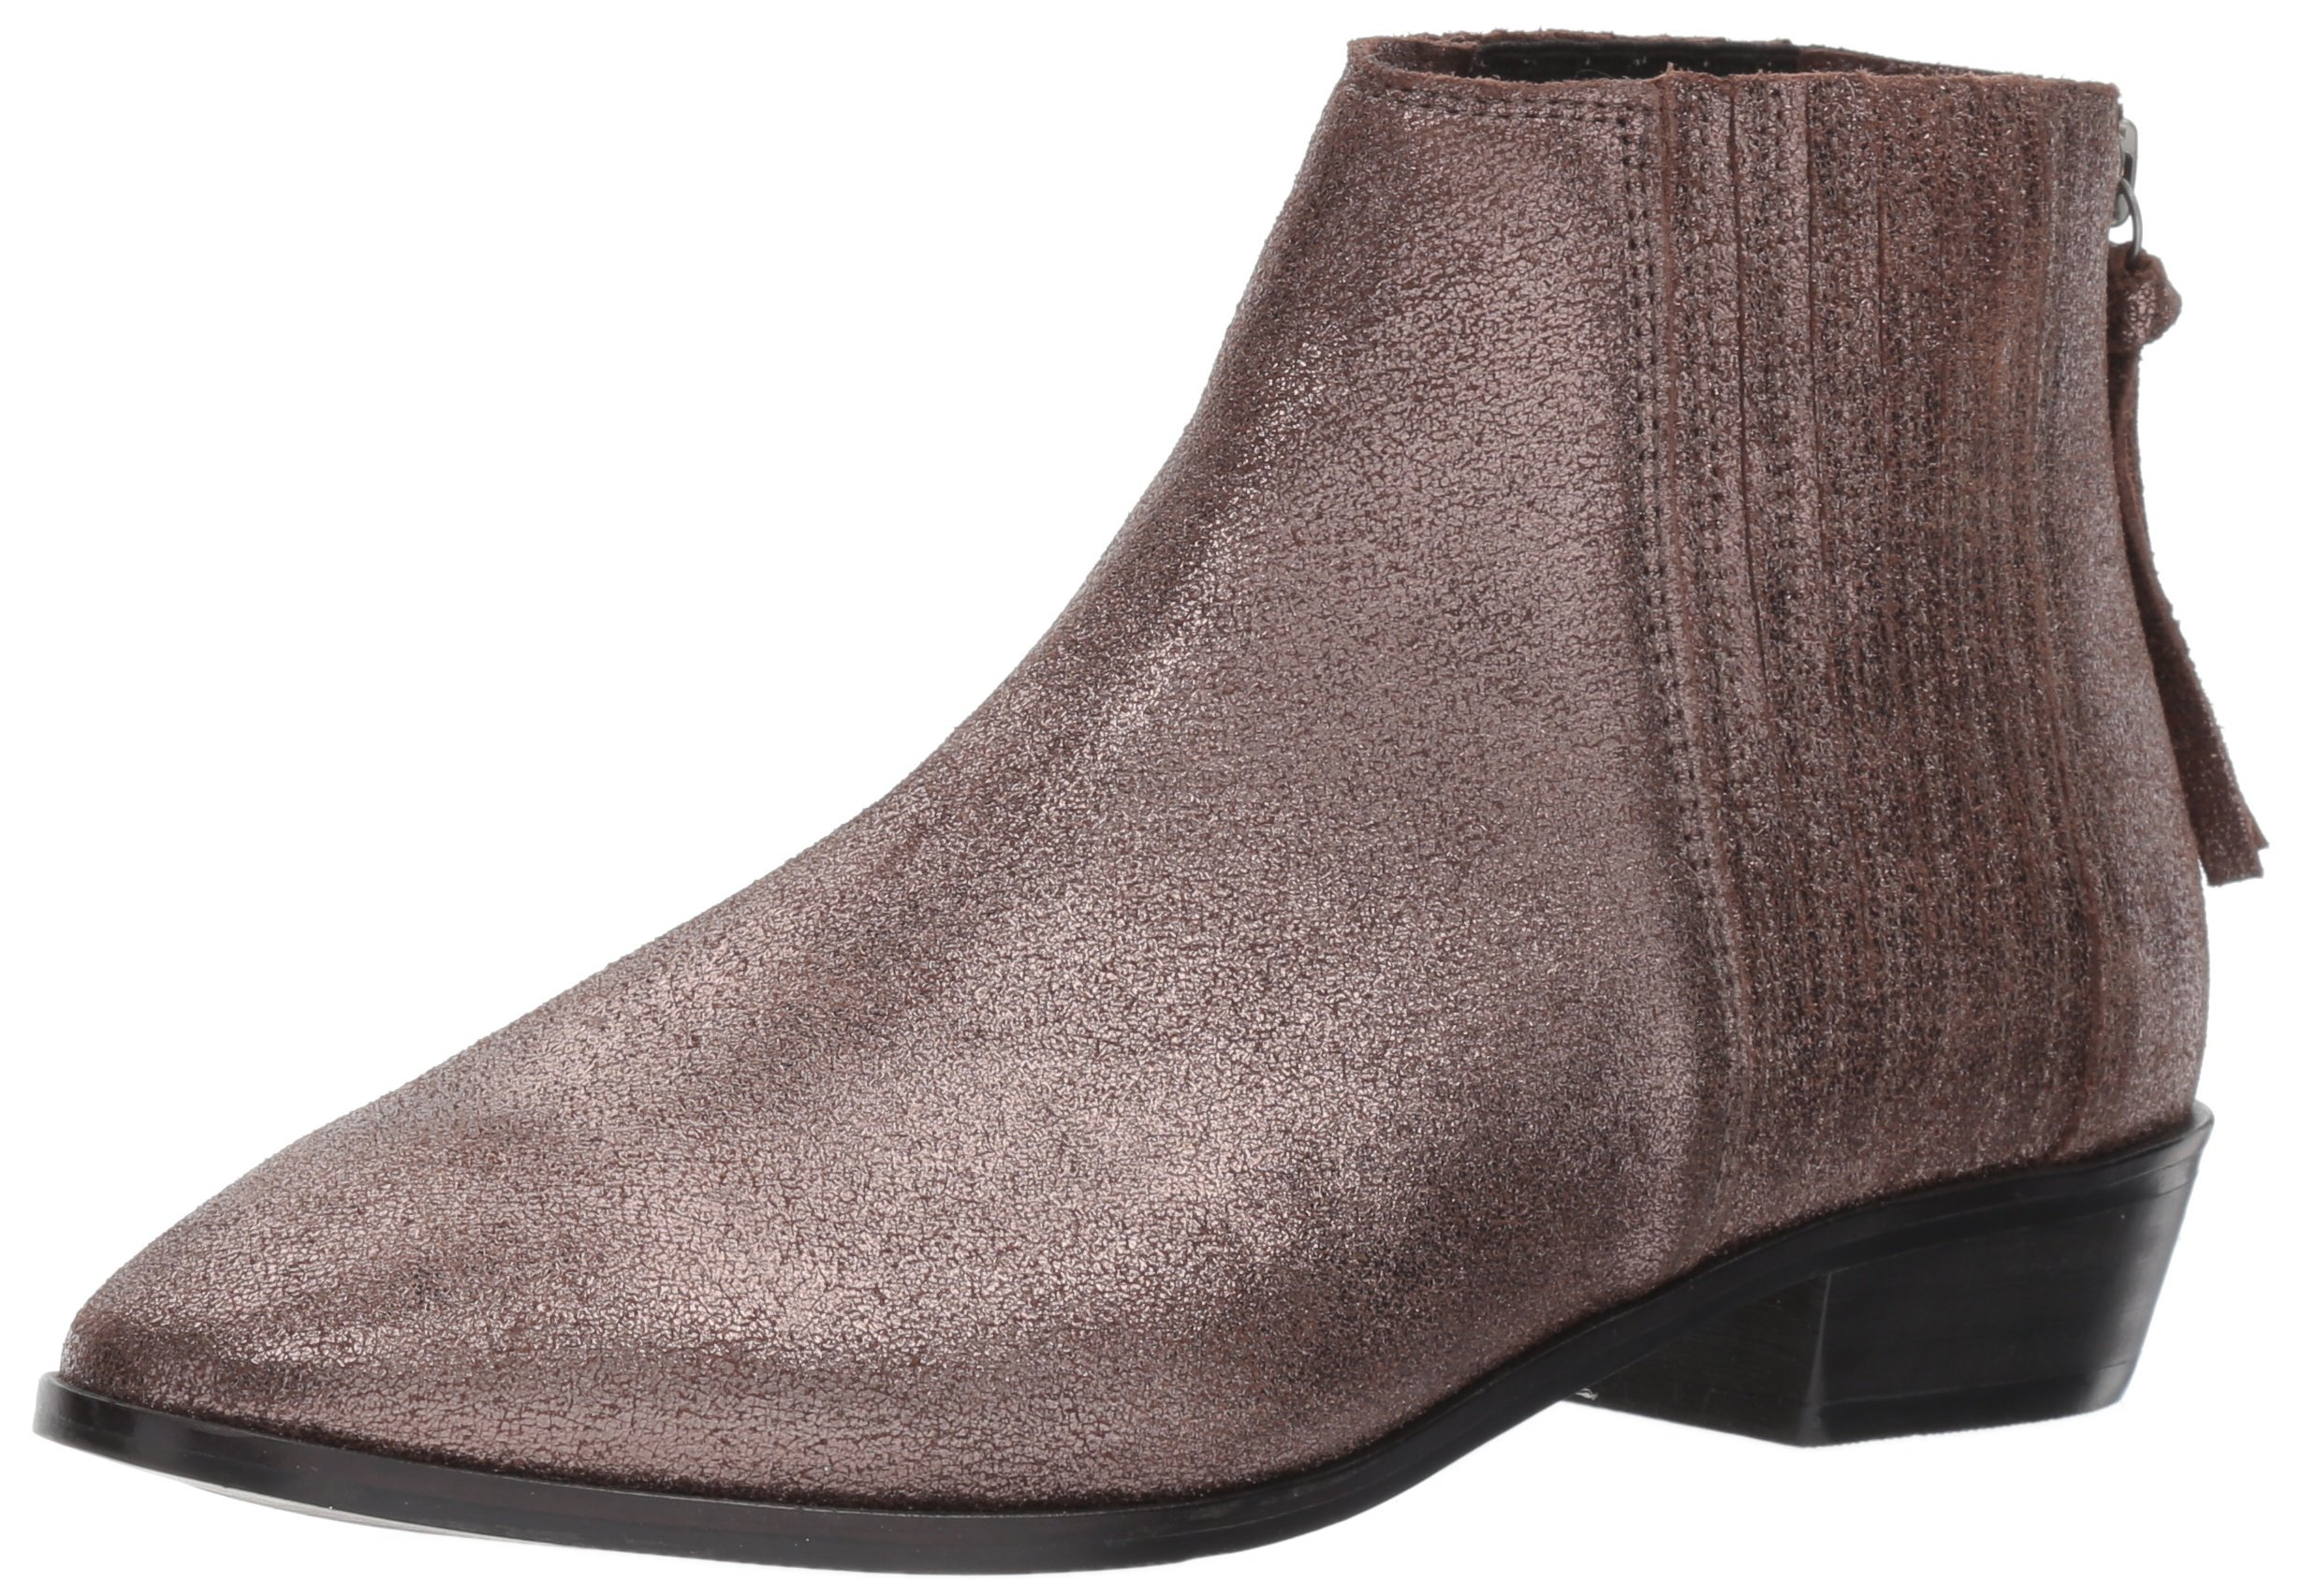 Kenneth Cole REACTION Women's Loop-y Flat Finger Gusset Leather Ankle Bootie, Hematite, 5 M US